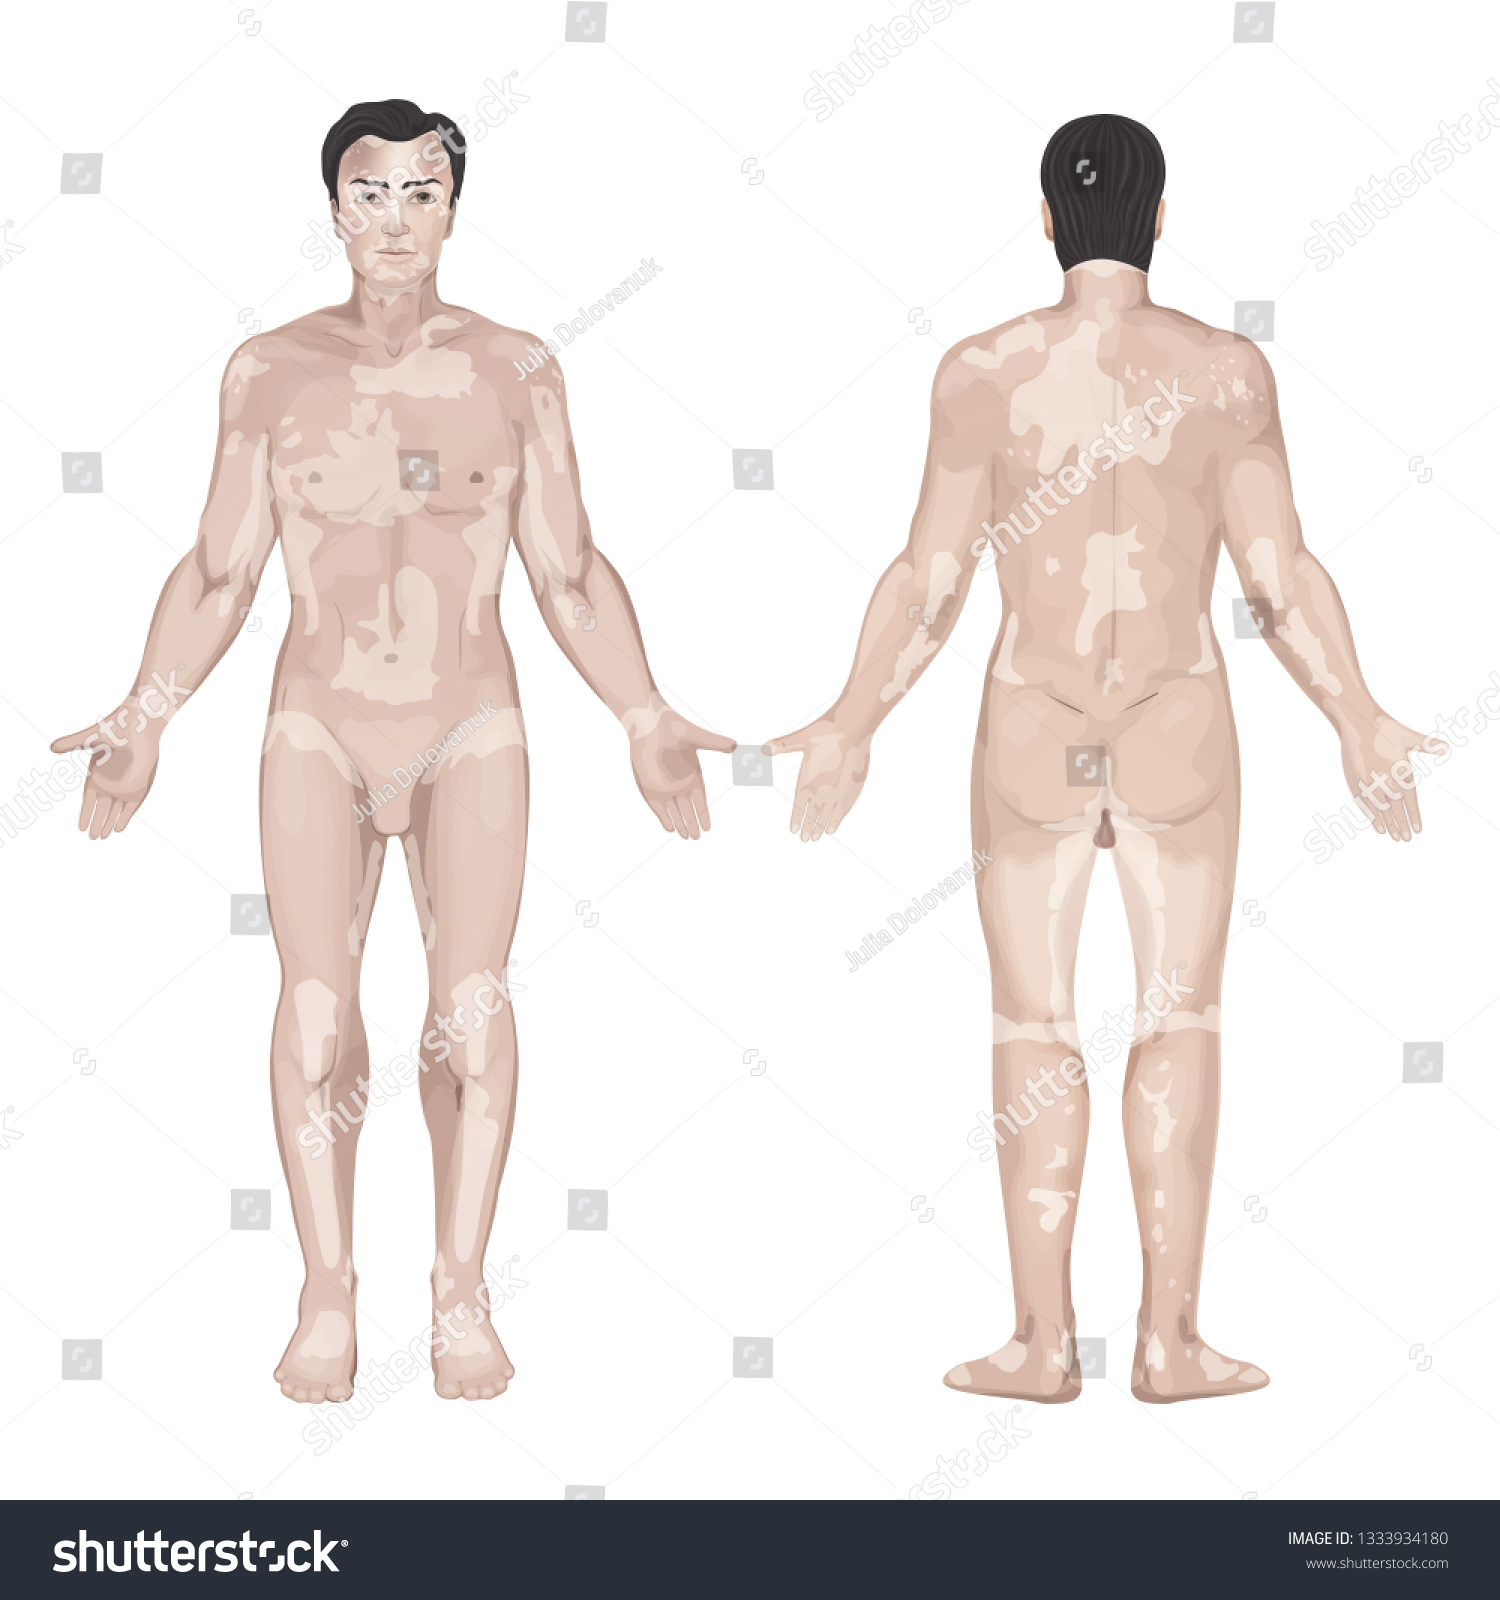 Male Figure Vitiligo Syndrome Localization Symptoms Stock Vector Royalty Free 1333934180